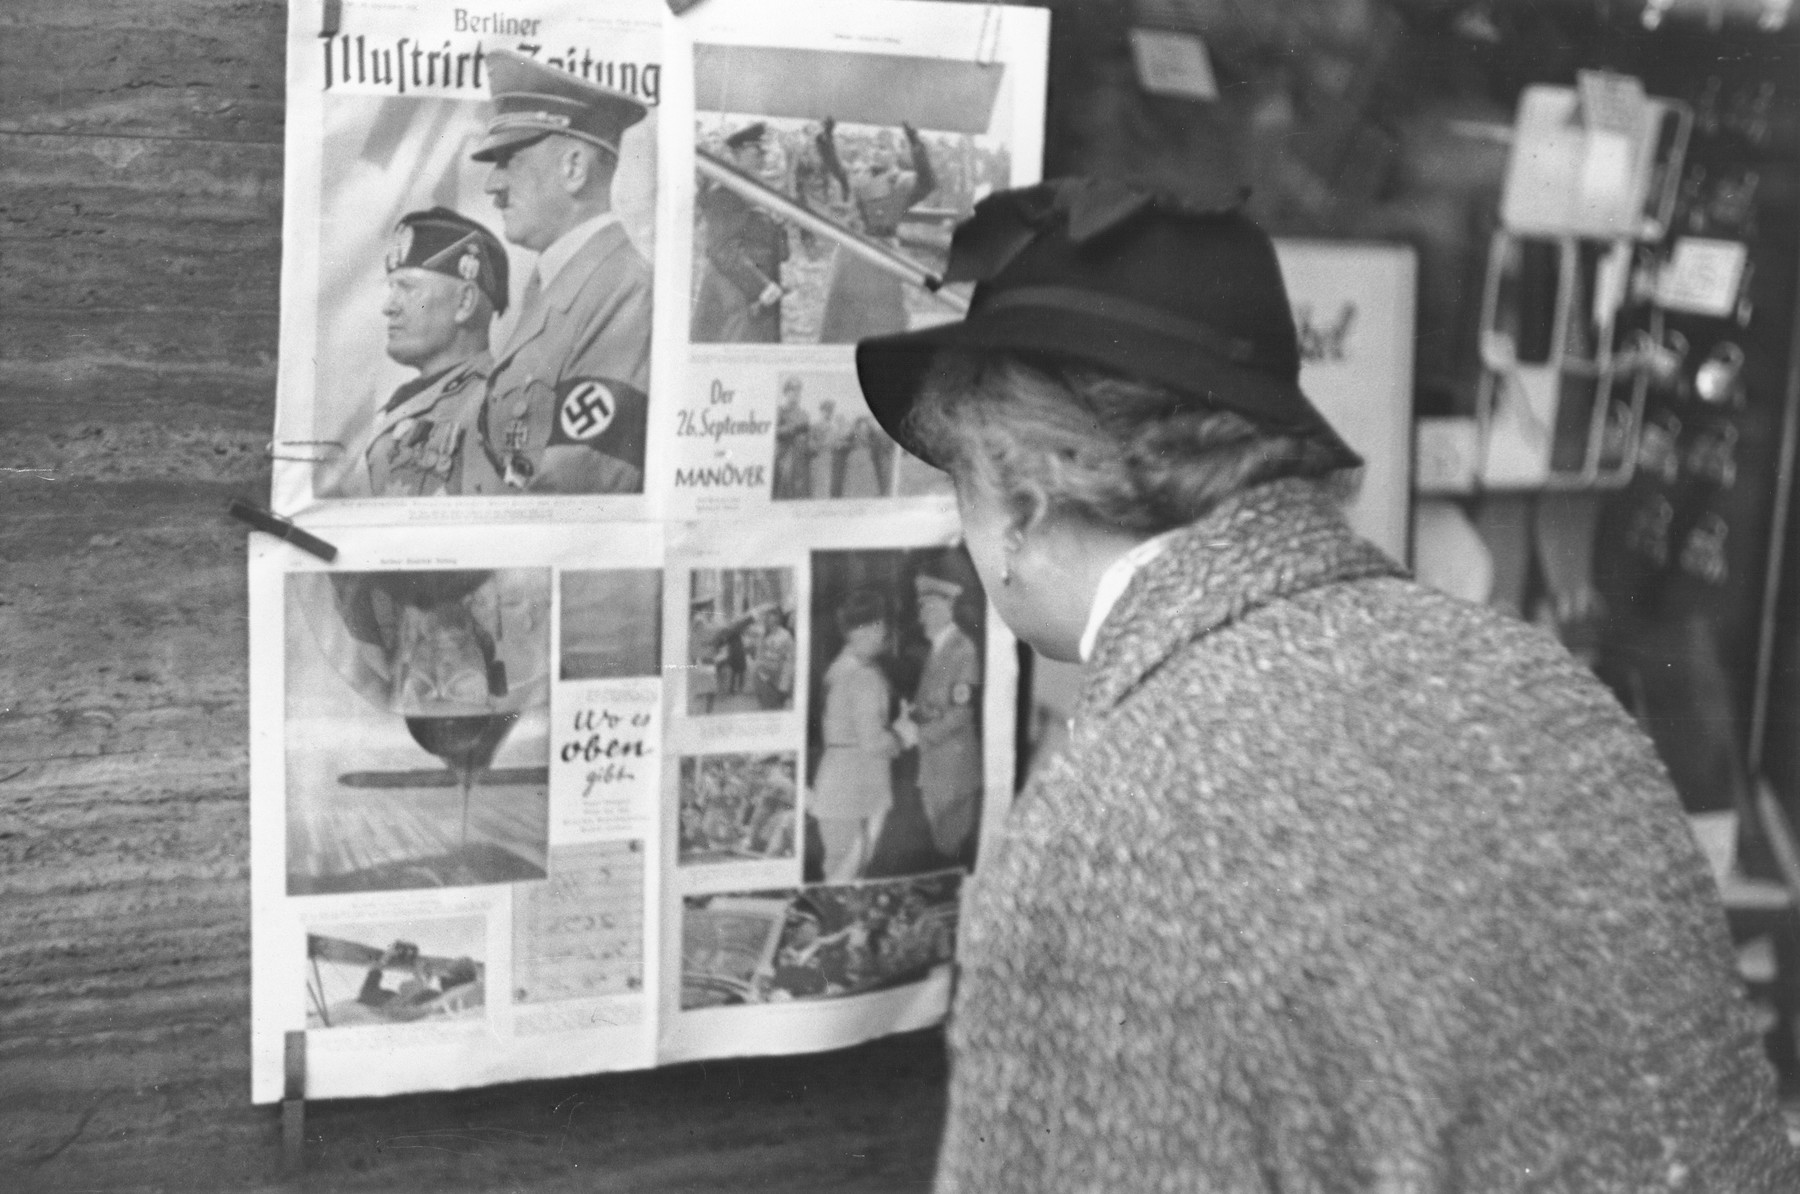 A German woman reads a copy of the Berliner Illustrierte newspaper that has been posted on a wall in Berlin.  It features photographs of Mussolini's official visit to Berlin in September 1937.